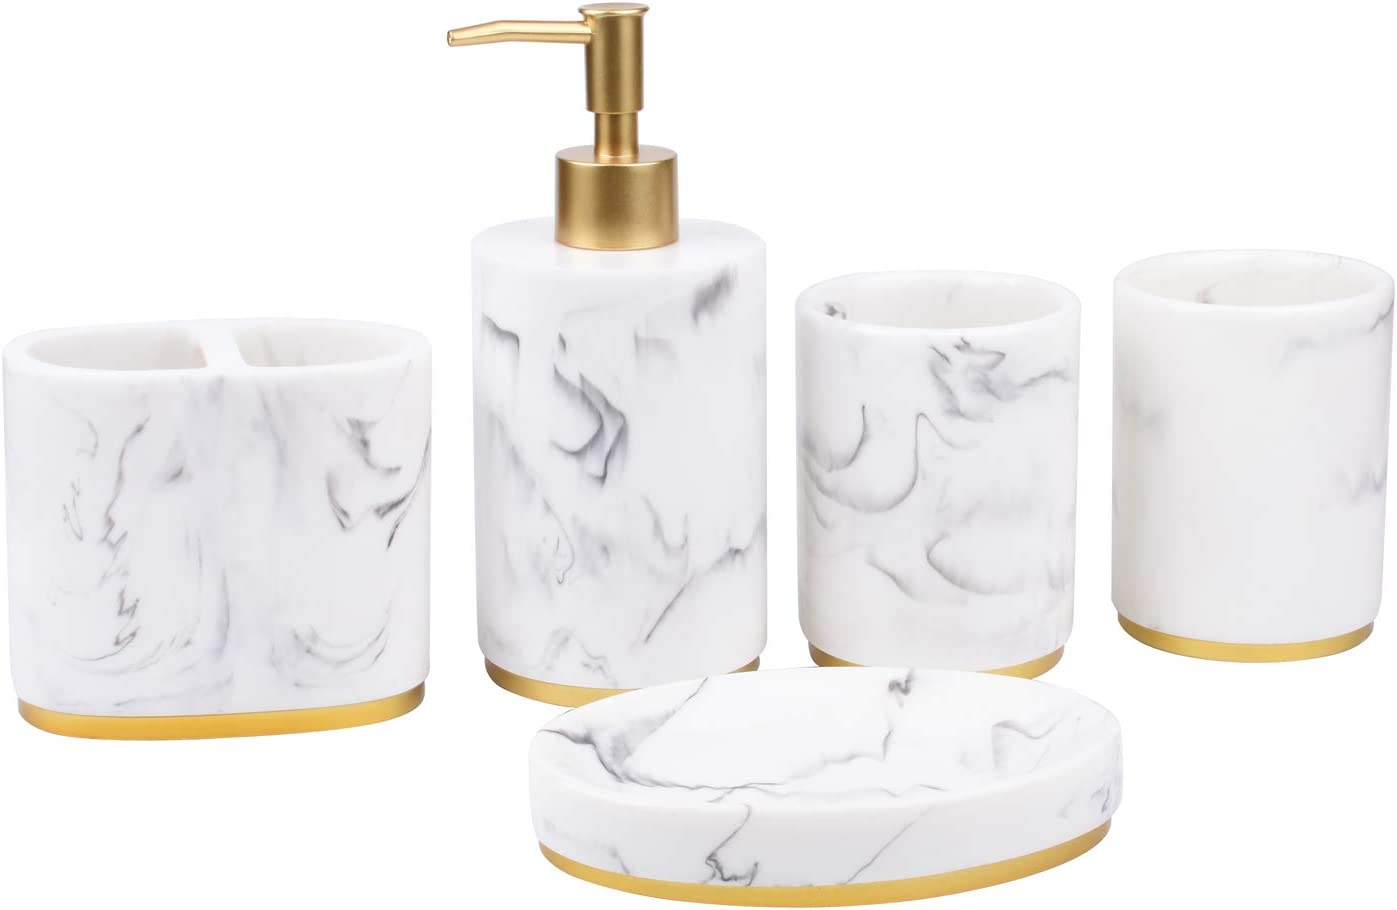 Bathroom Accessories Set 5 Piece,Resin Bathroom Set Accessories with Toothbrush Holder,Soap Dispenser,Soap Dish,Tumbler Cup,Marble Pattern Bathroom Gift Set-White and Gold